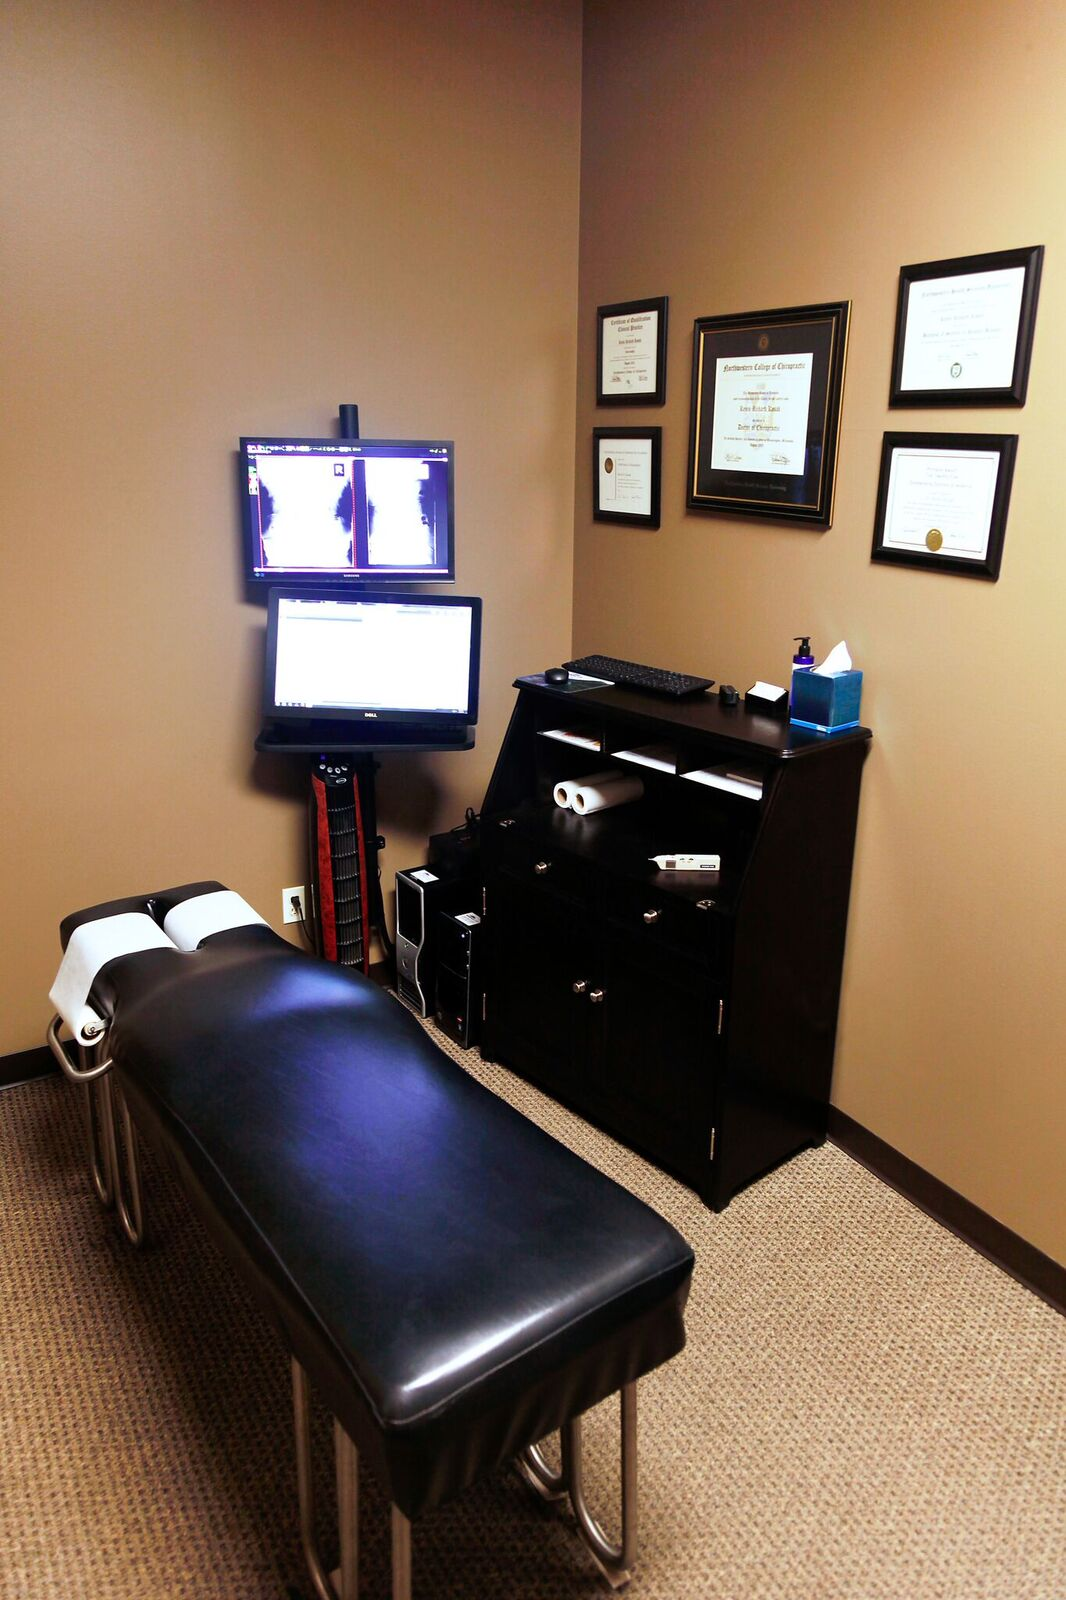 Treatments and services at Kosak chiropractic in omaha